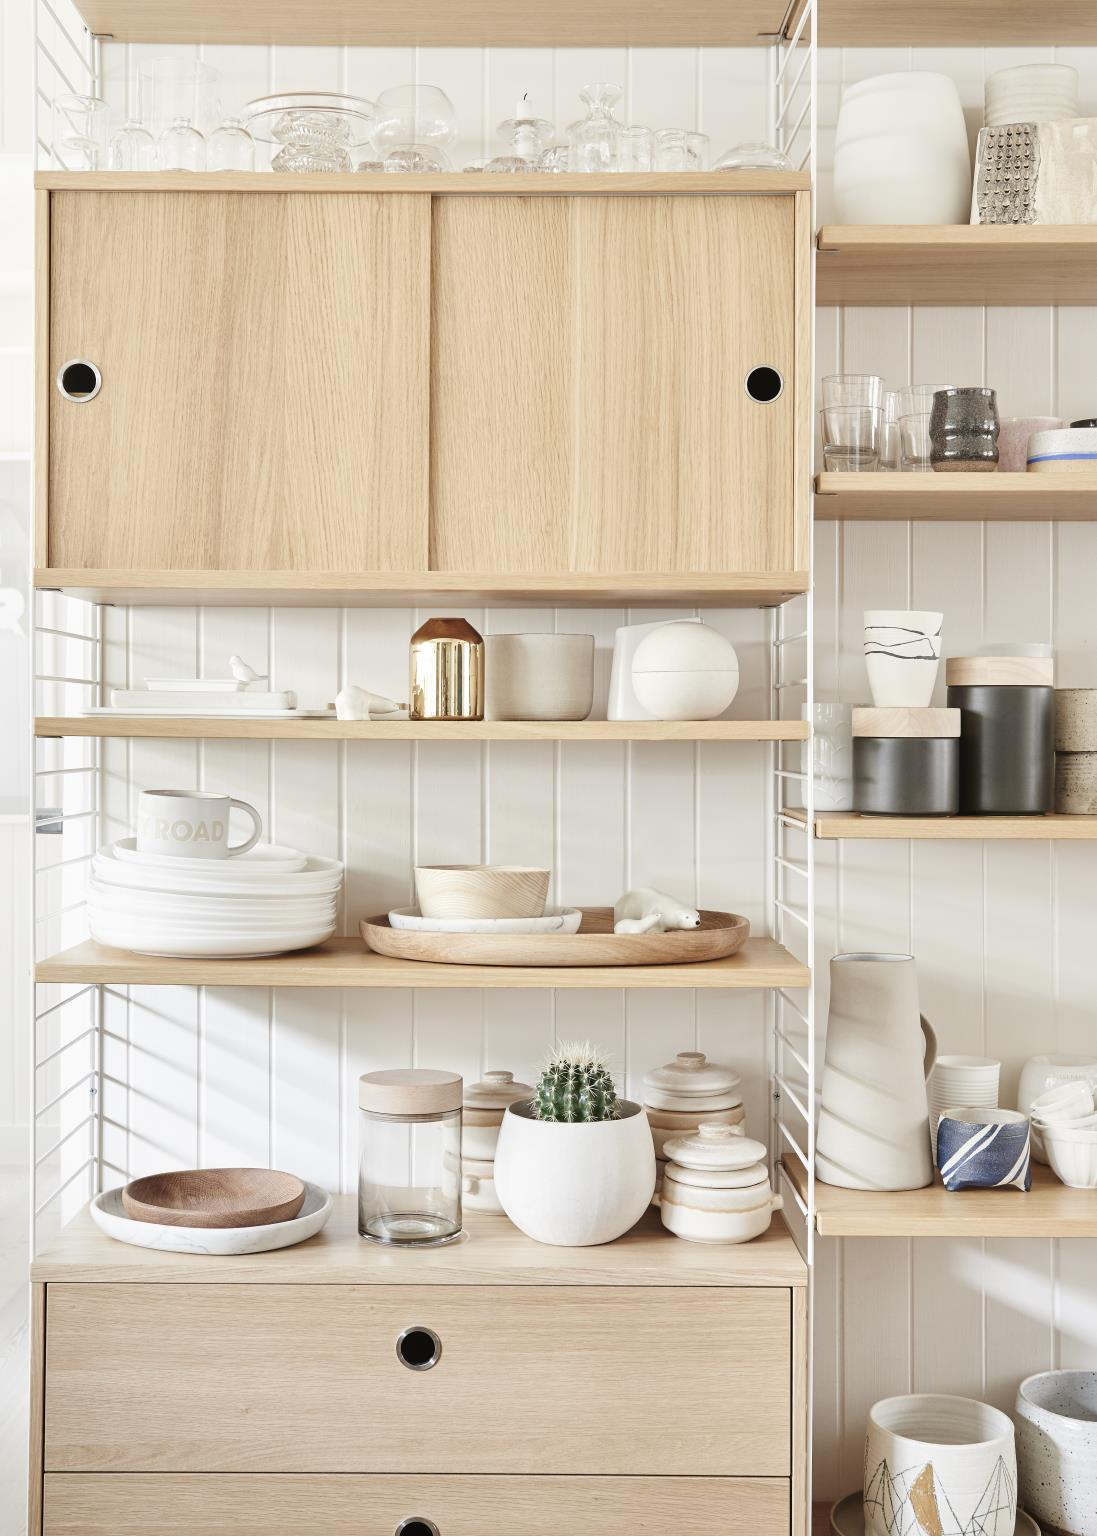 If you want to opt for sliding cabinet doors in your kitchen, make sure they work well with your existing decor.